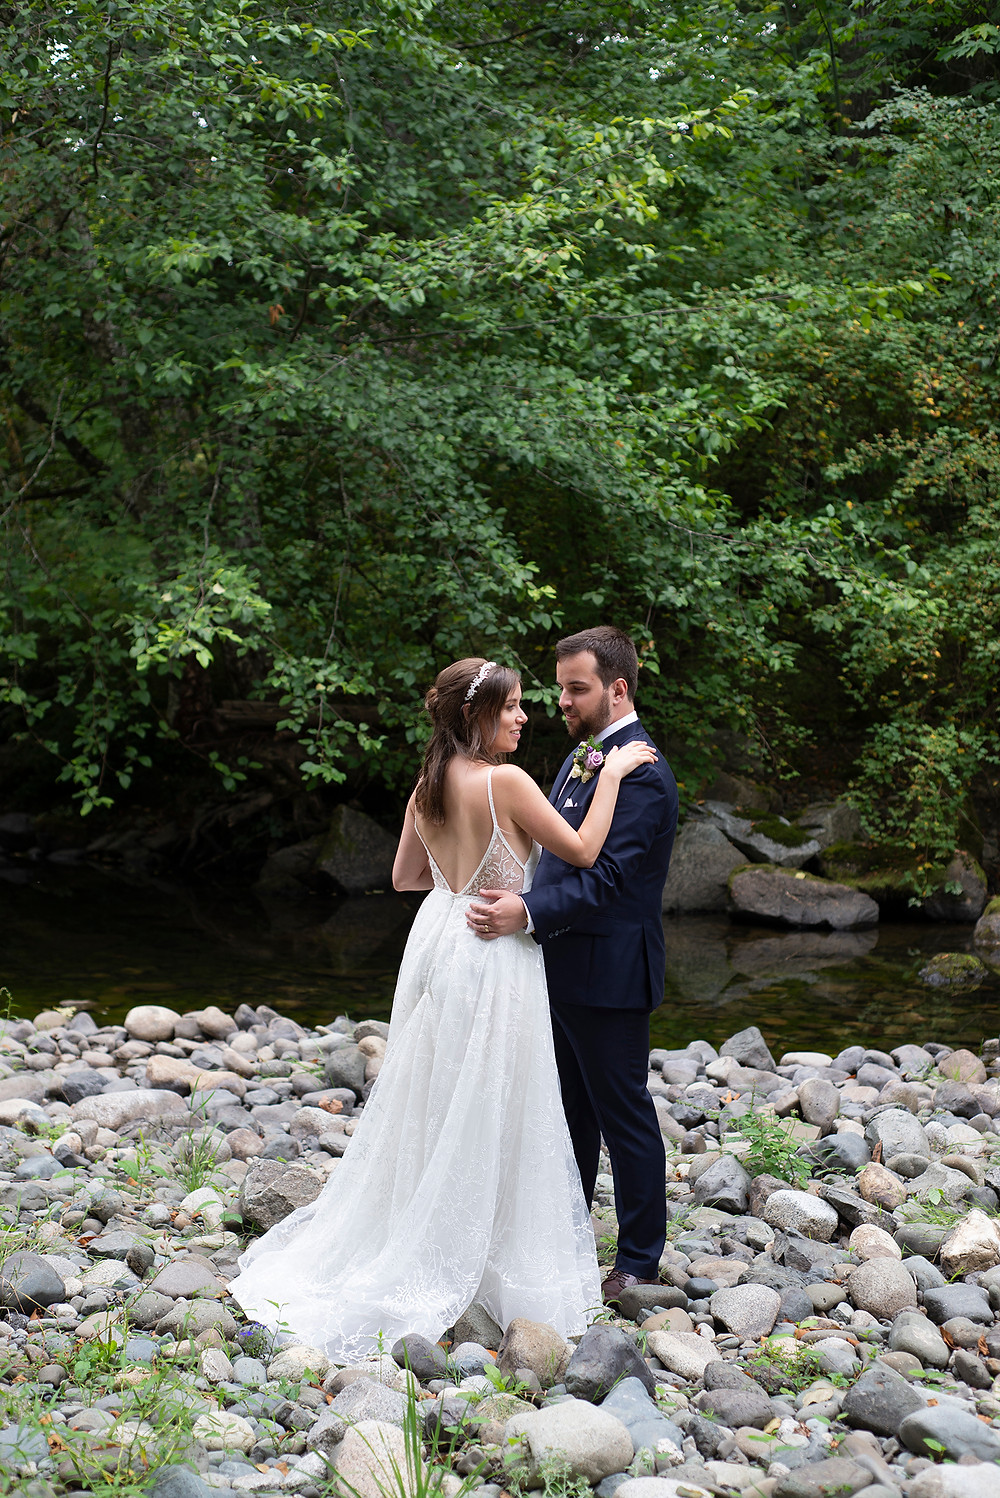 Bride shows off her beautiful wedding dress at her August wedding on Vancouver Island. Photographed by Kaitlyn Shea.